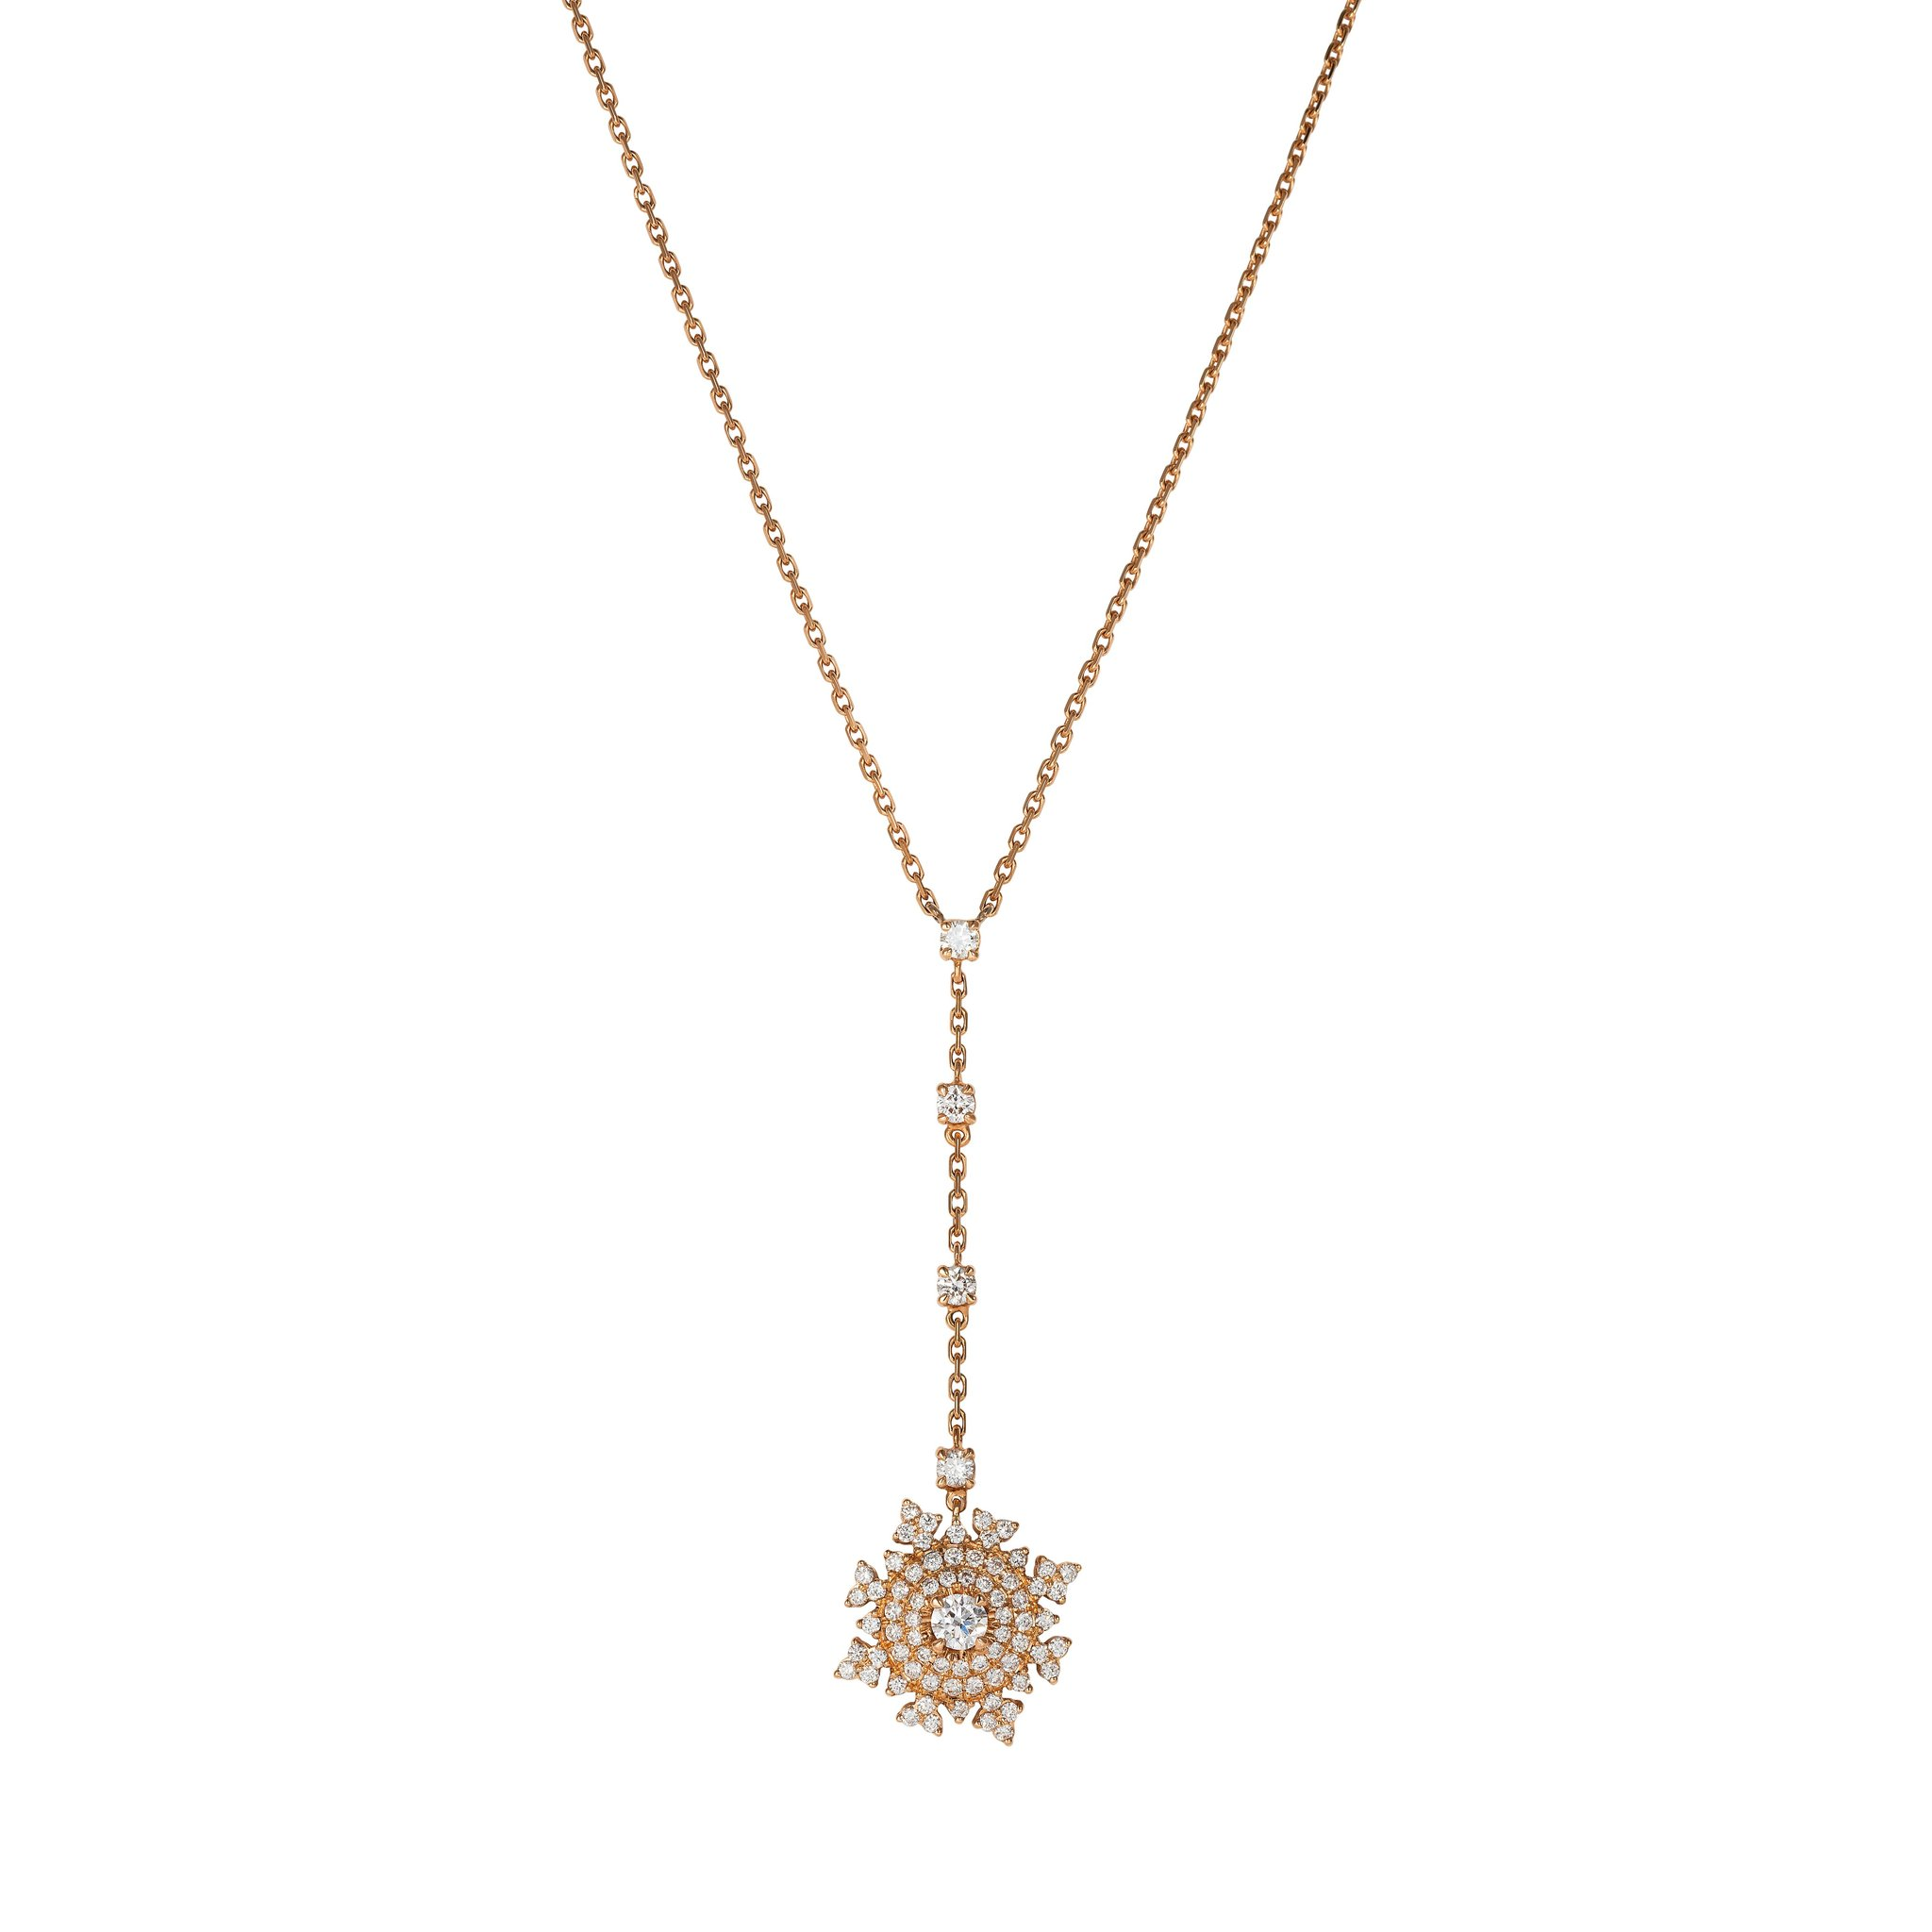 Petite Tsarina Rose Long Necklace by Nadine Aysoy on curated-crowd.com